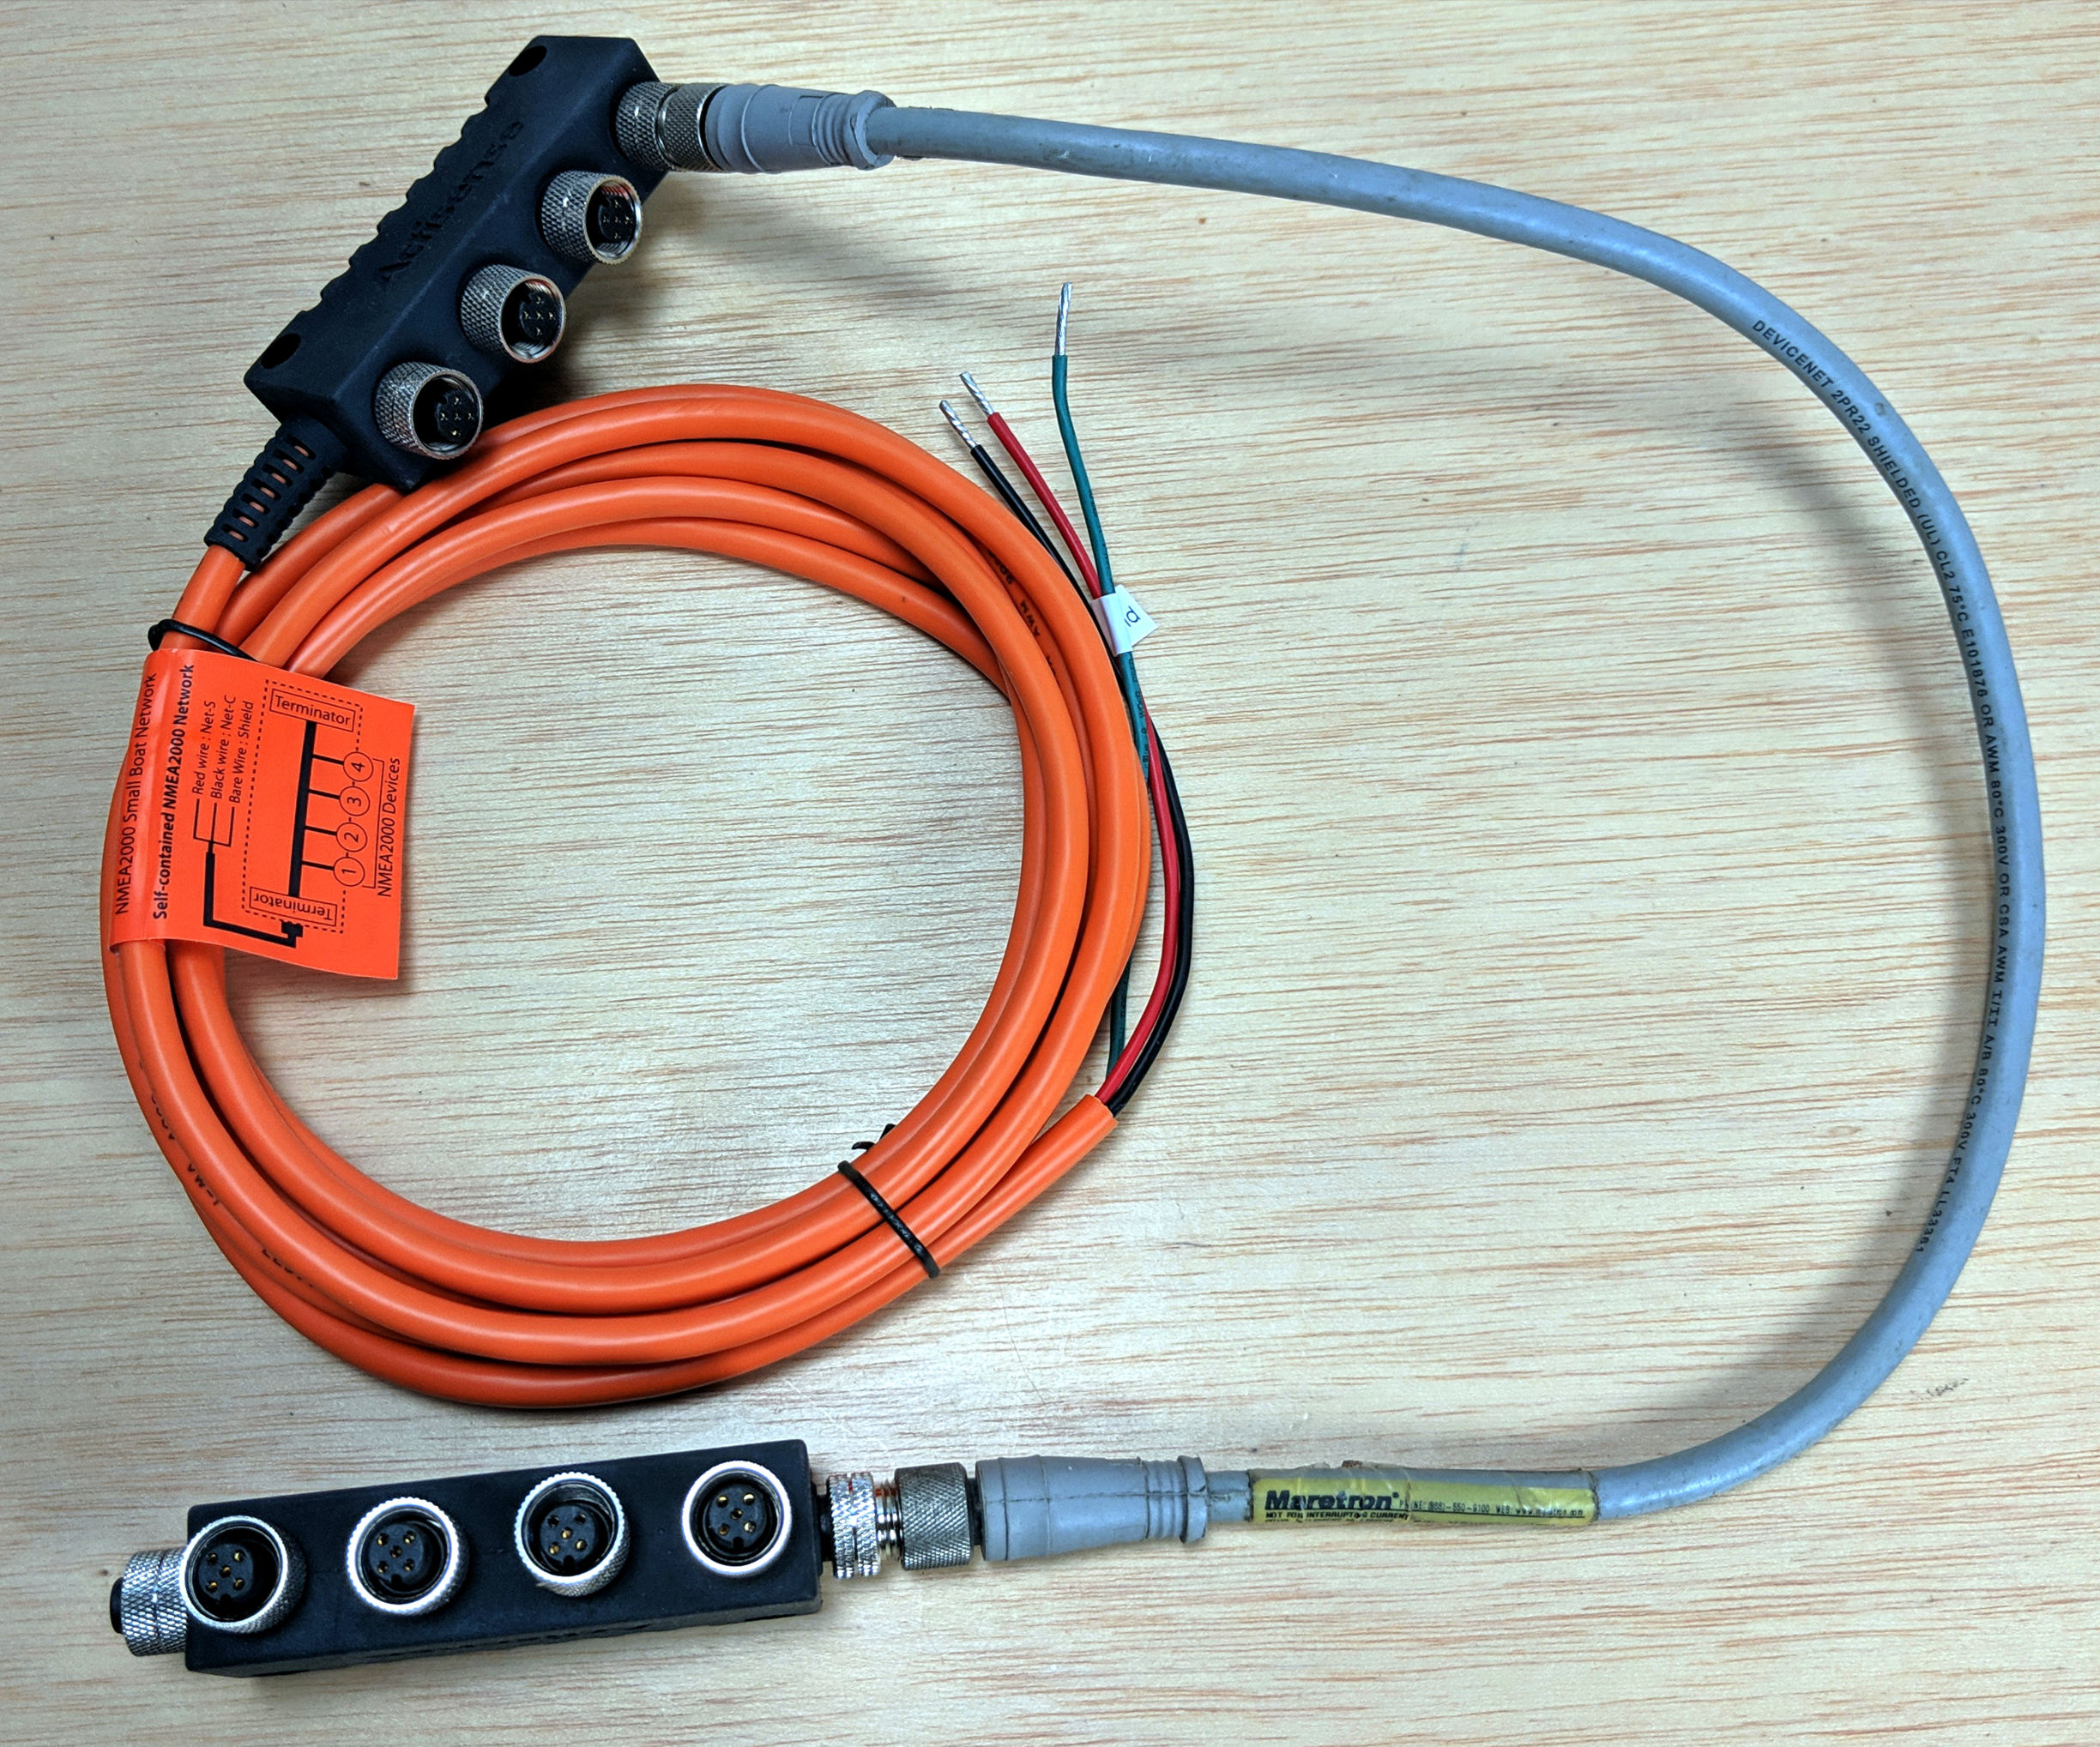 Actisense NMEA 2000 cables & connectors, plus network design tips